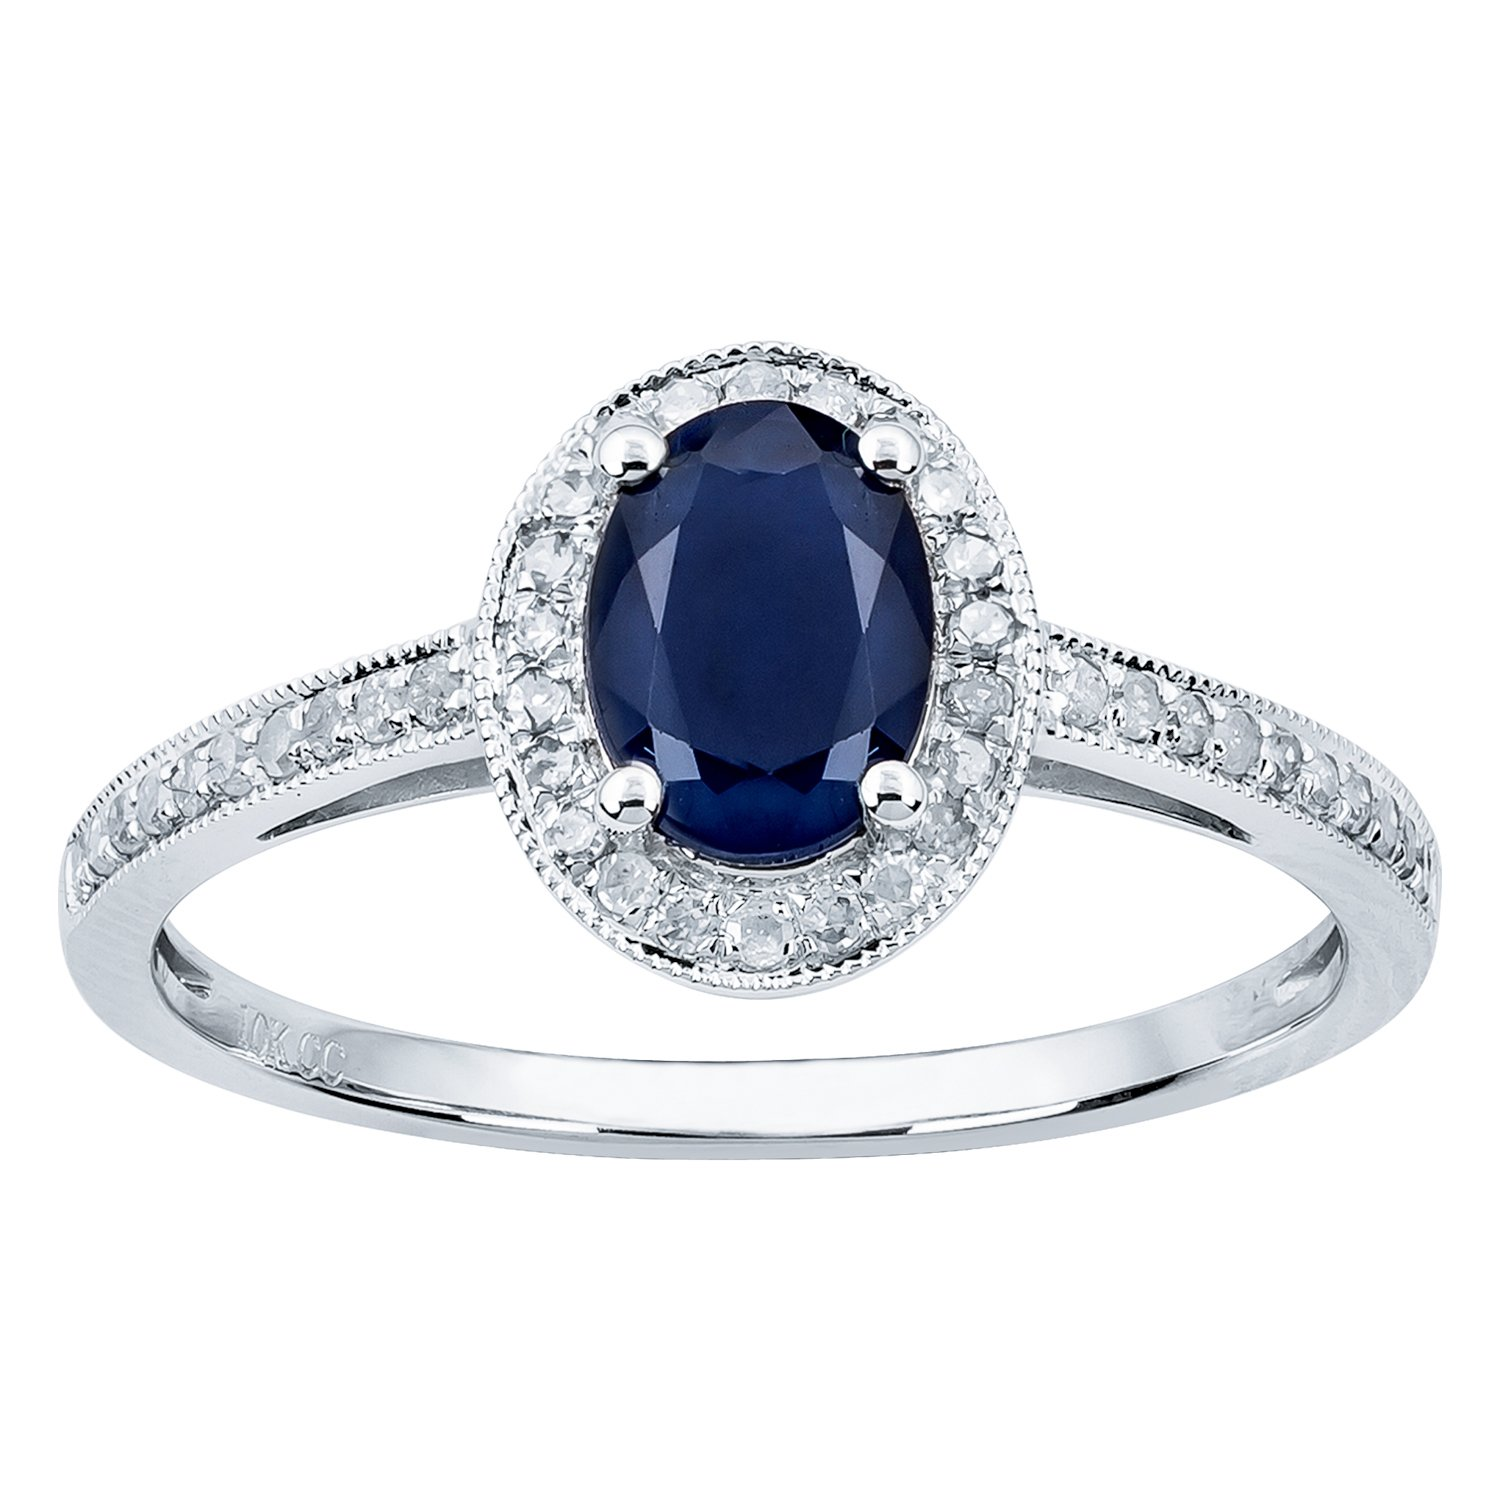 10k Rhodium-Plated White Gold Genuine Oval Sapphire and Diamond Halo Ring